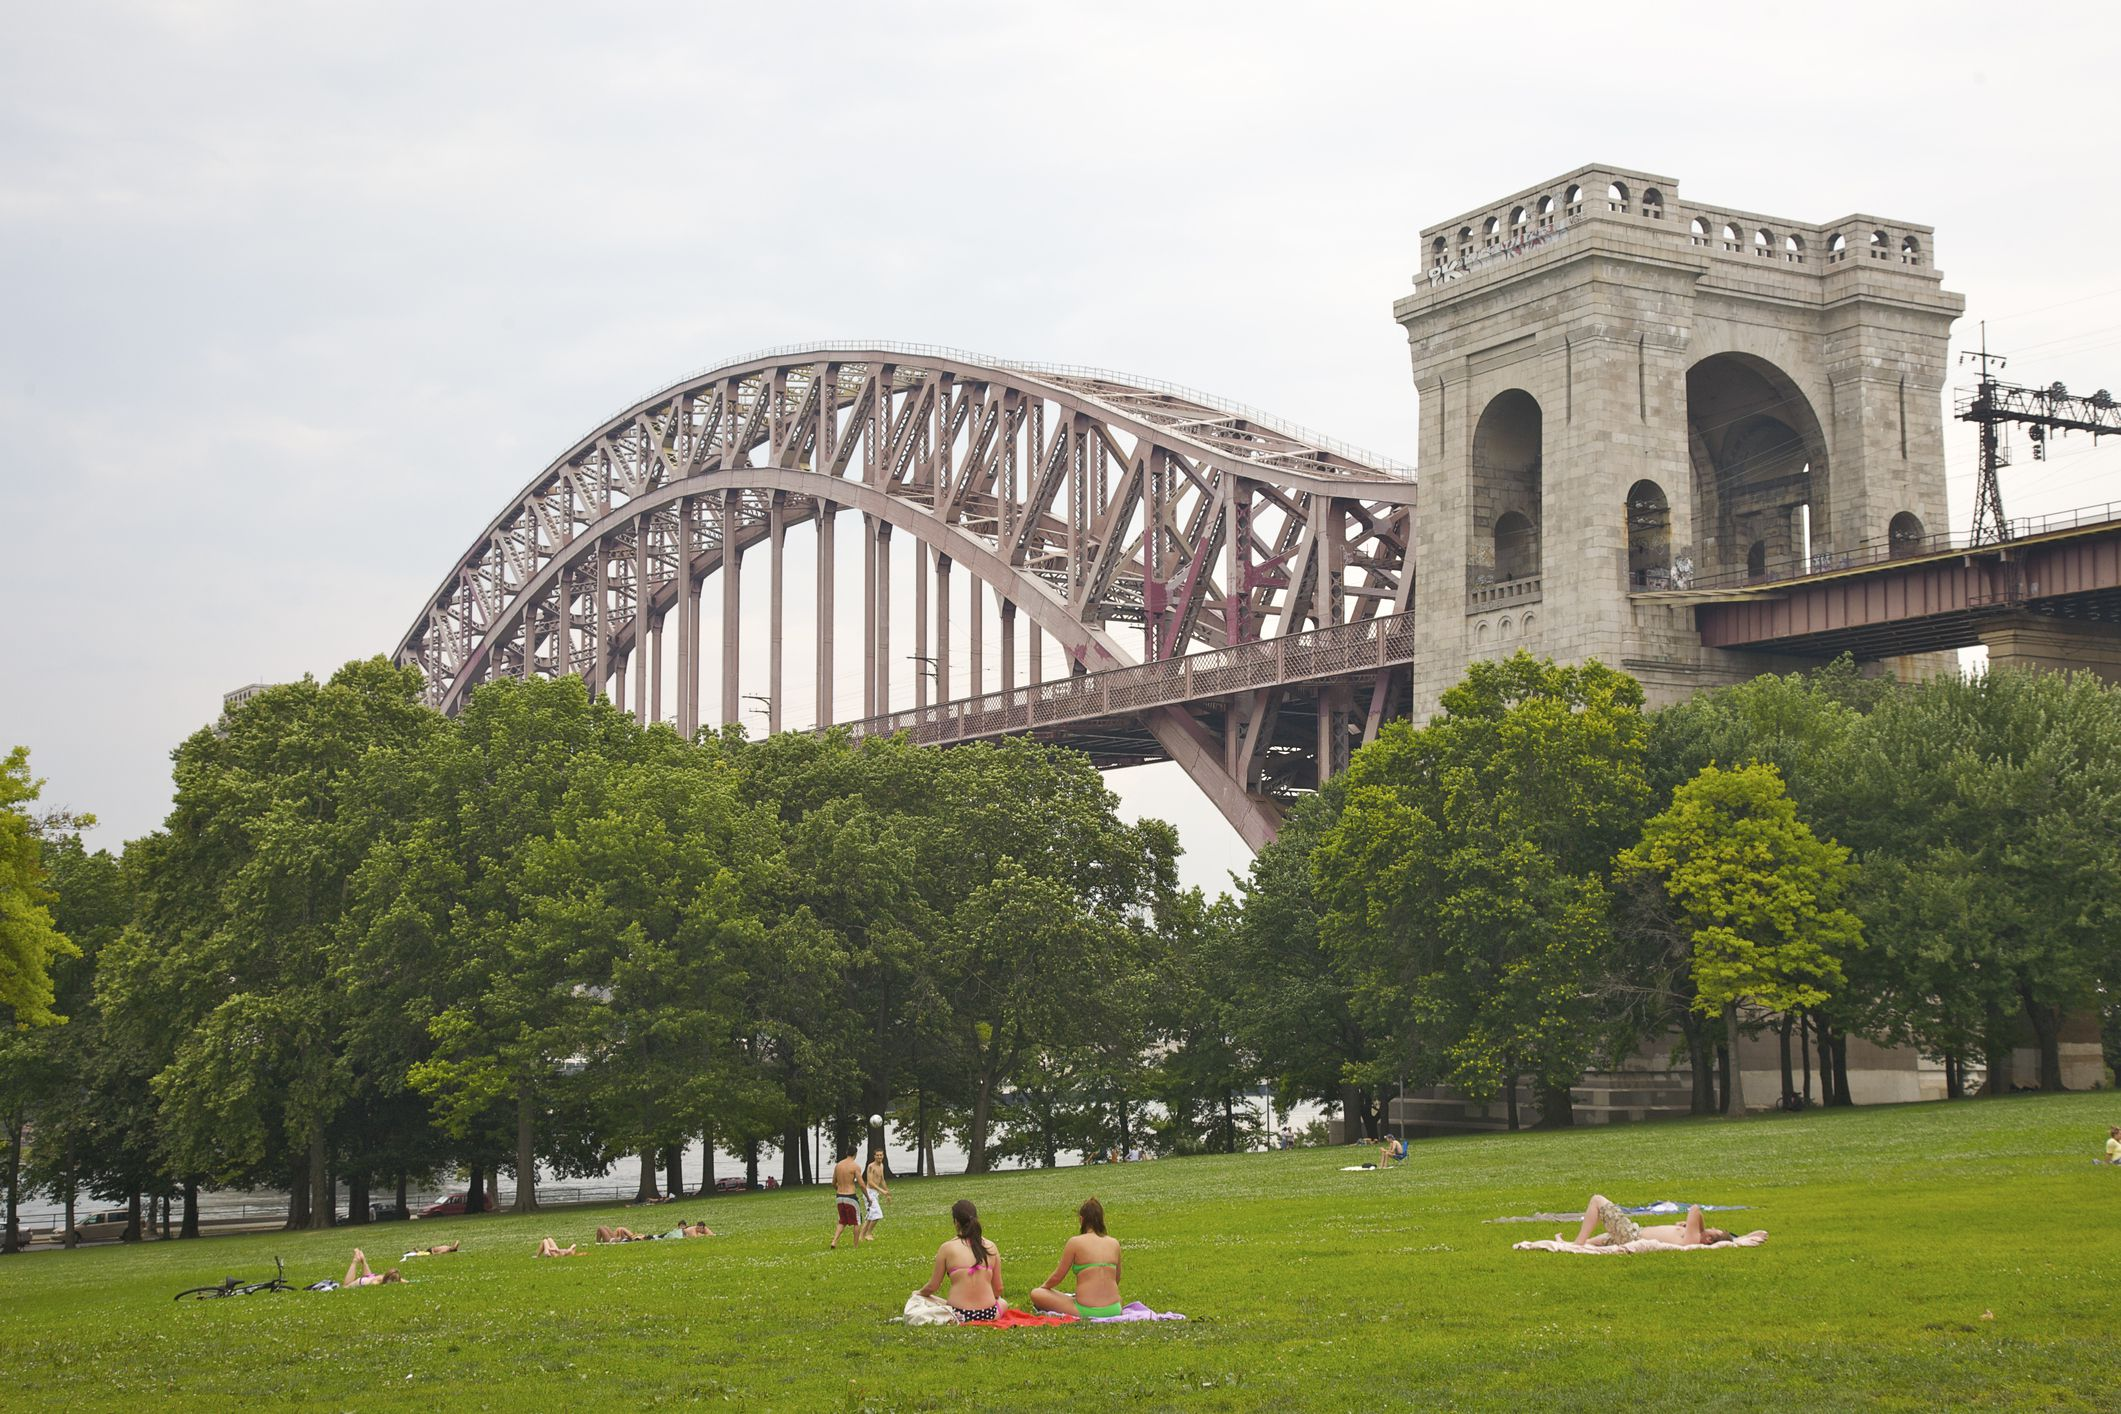 Astoria park activities attractions in queens for Cultural things to do in nyc